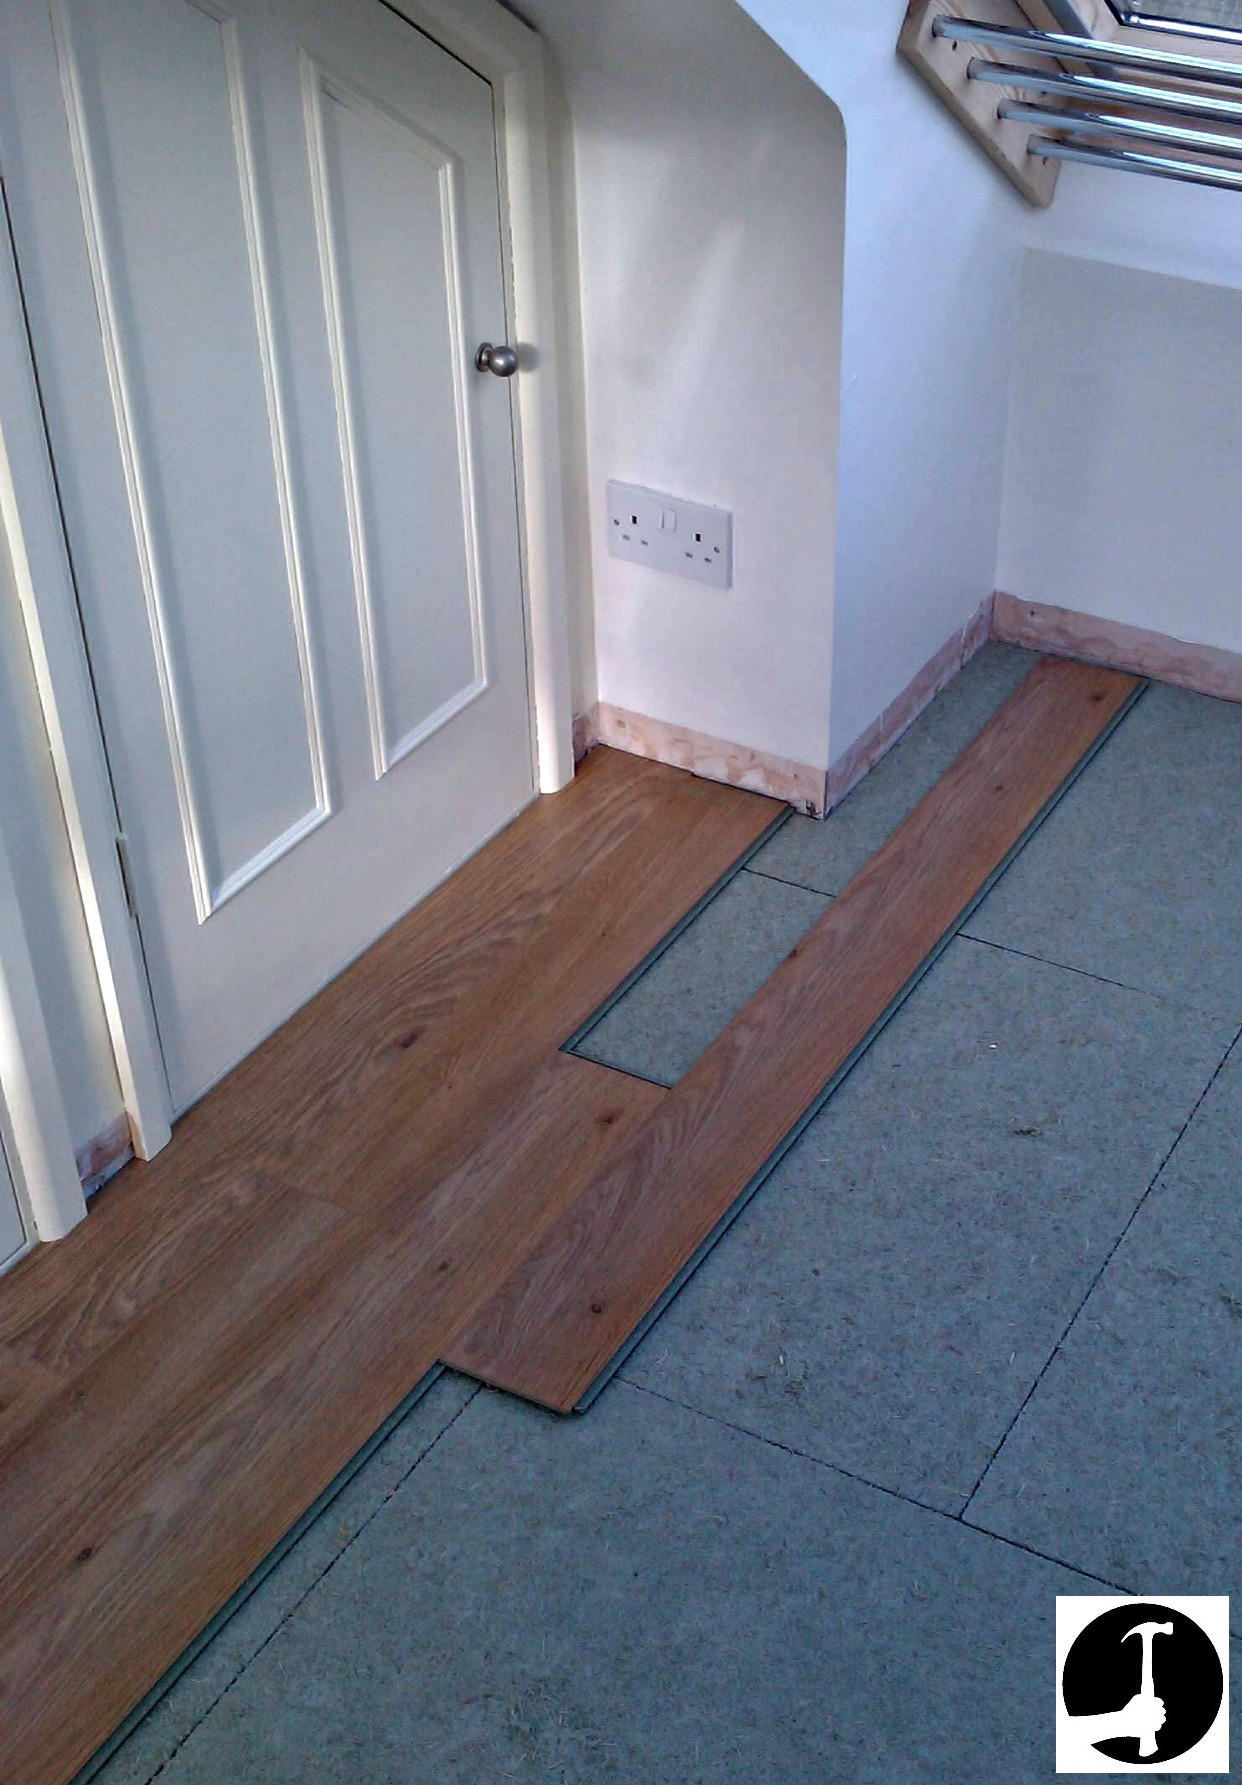 hardwood flooring on concrete floor of how to install laminate flooring with ease glued glue less systems regarding setting out laminate flooring